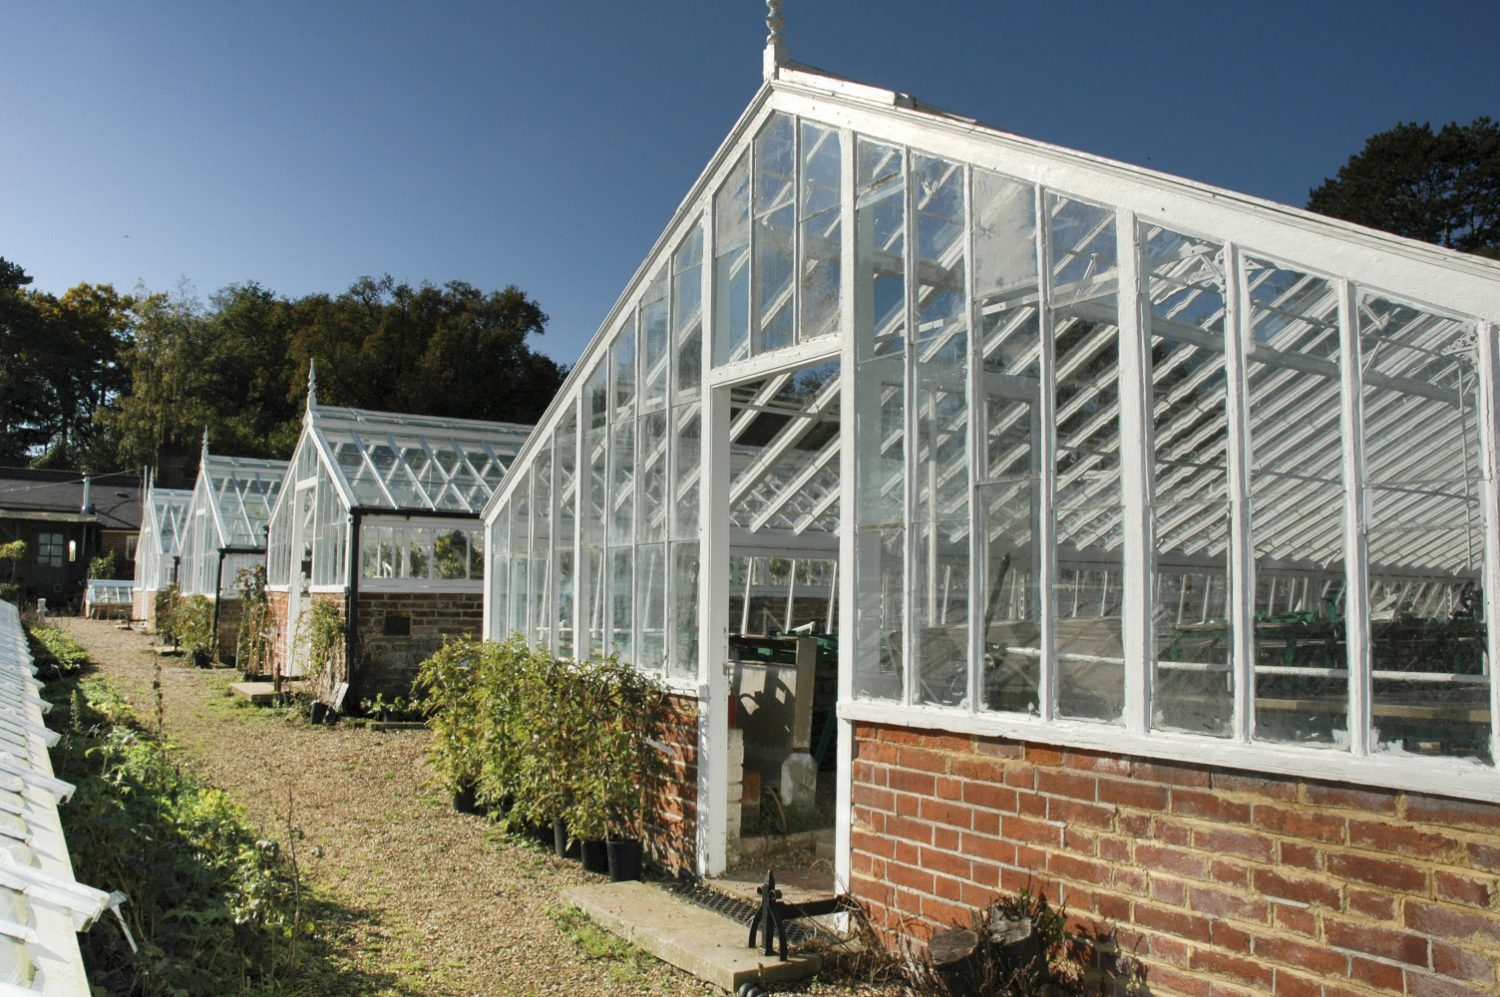 the renovated Victorian green houses at the Walled Nursey, in Hawkhurst